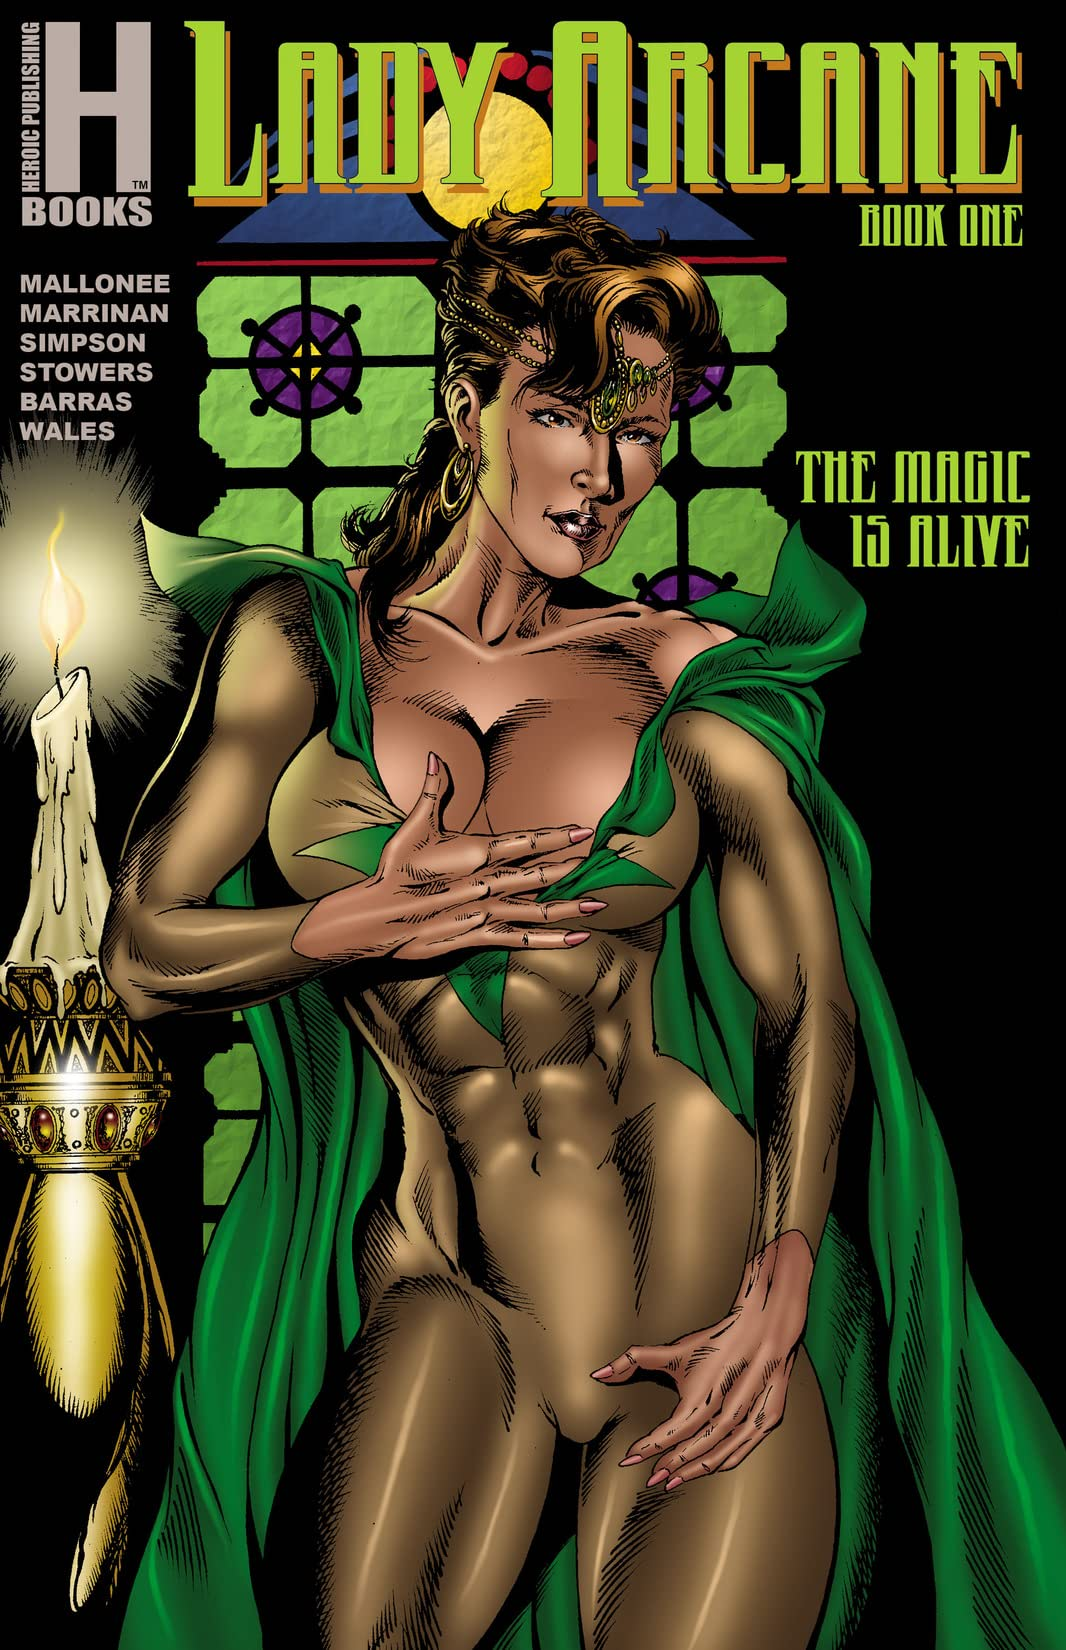 Lady Arcane Book One: The Magic is Alive